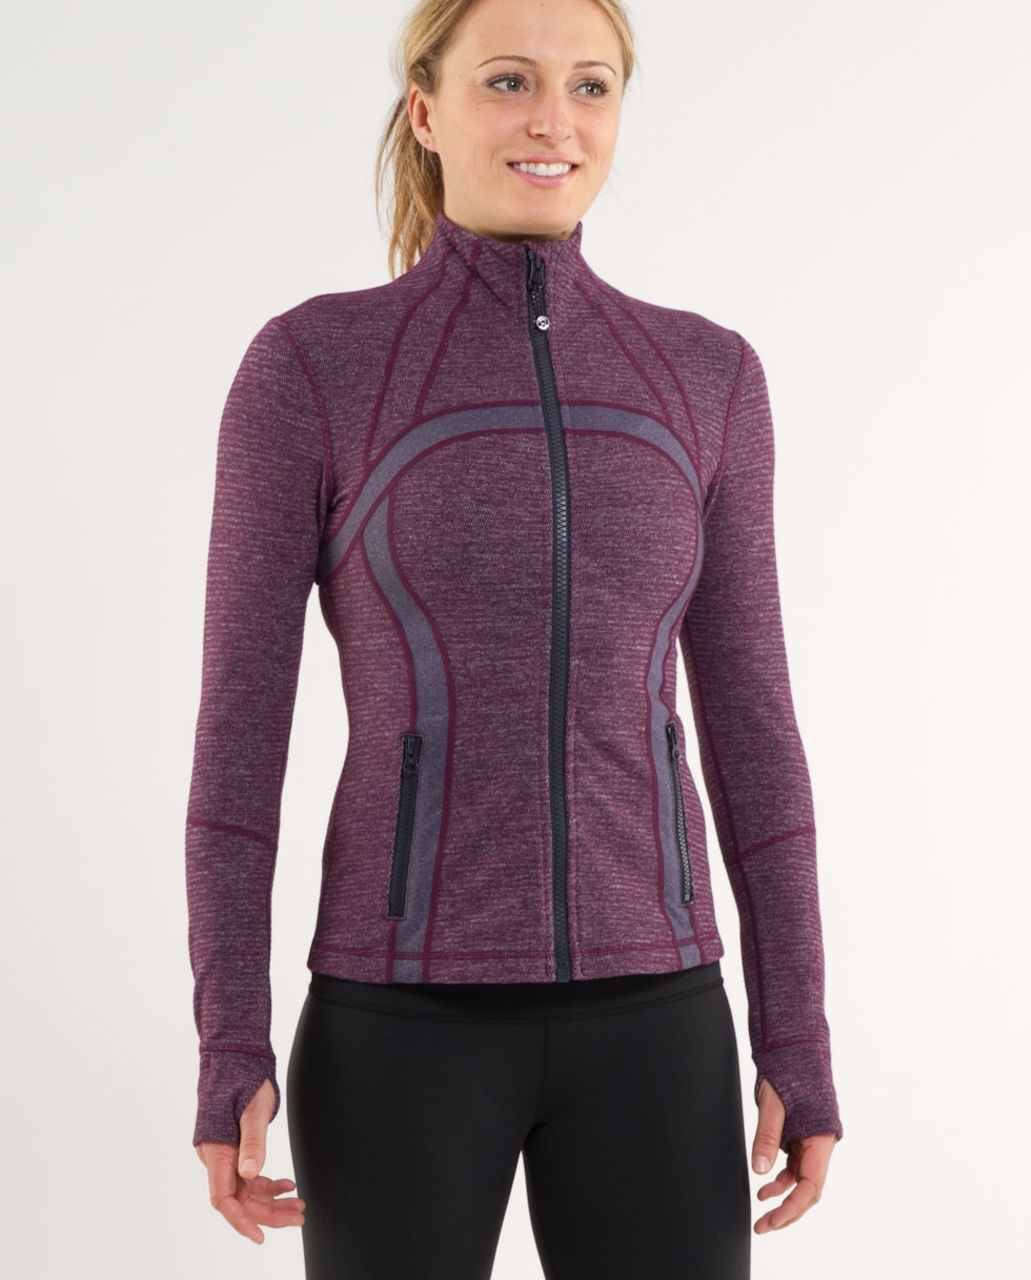 Lululemon Define Jacket *Soft Mini Check - Black Swan Heathered Plum Mini Check /  Heathered Black Swan